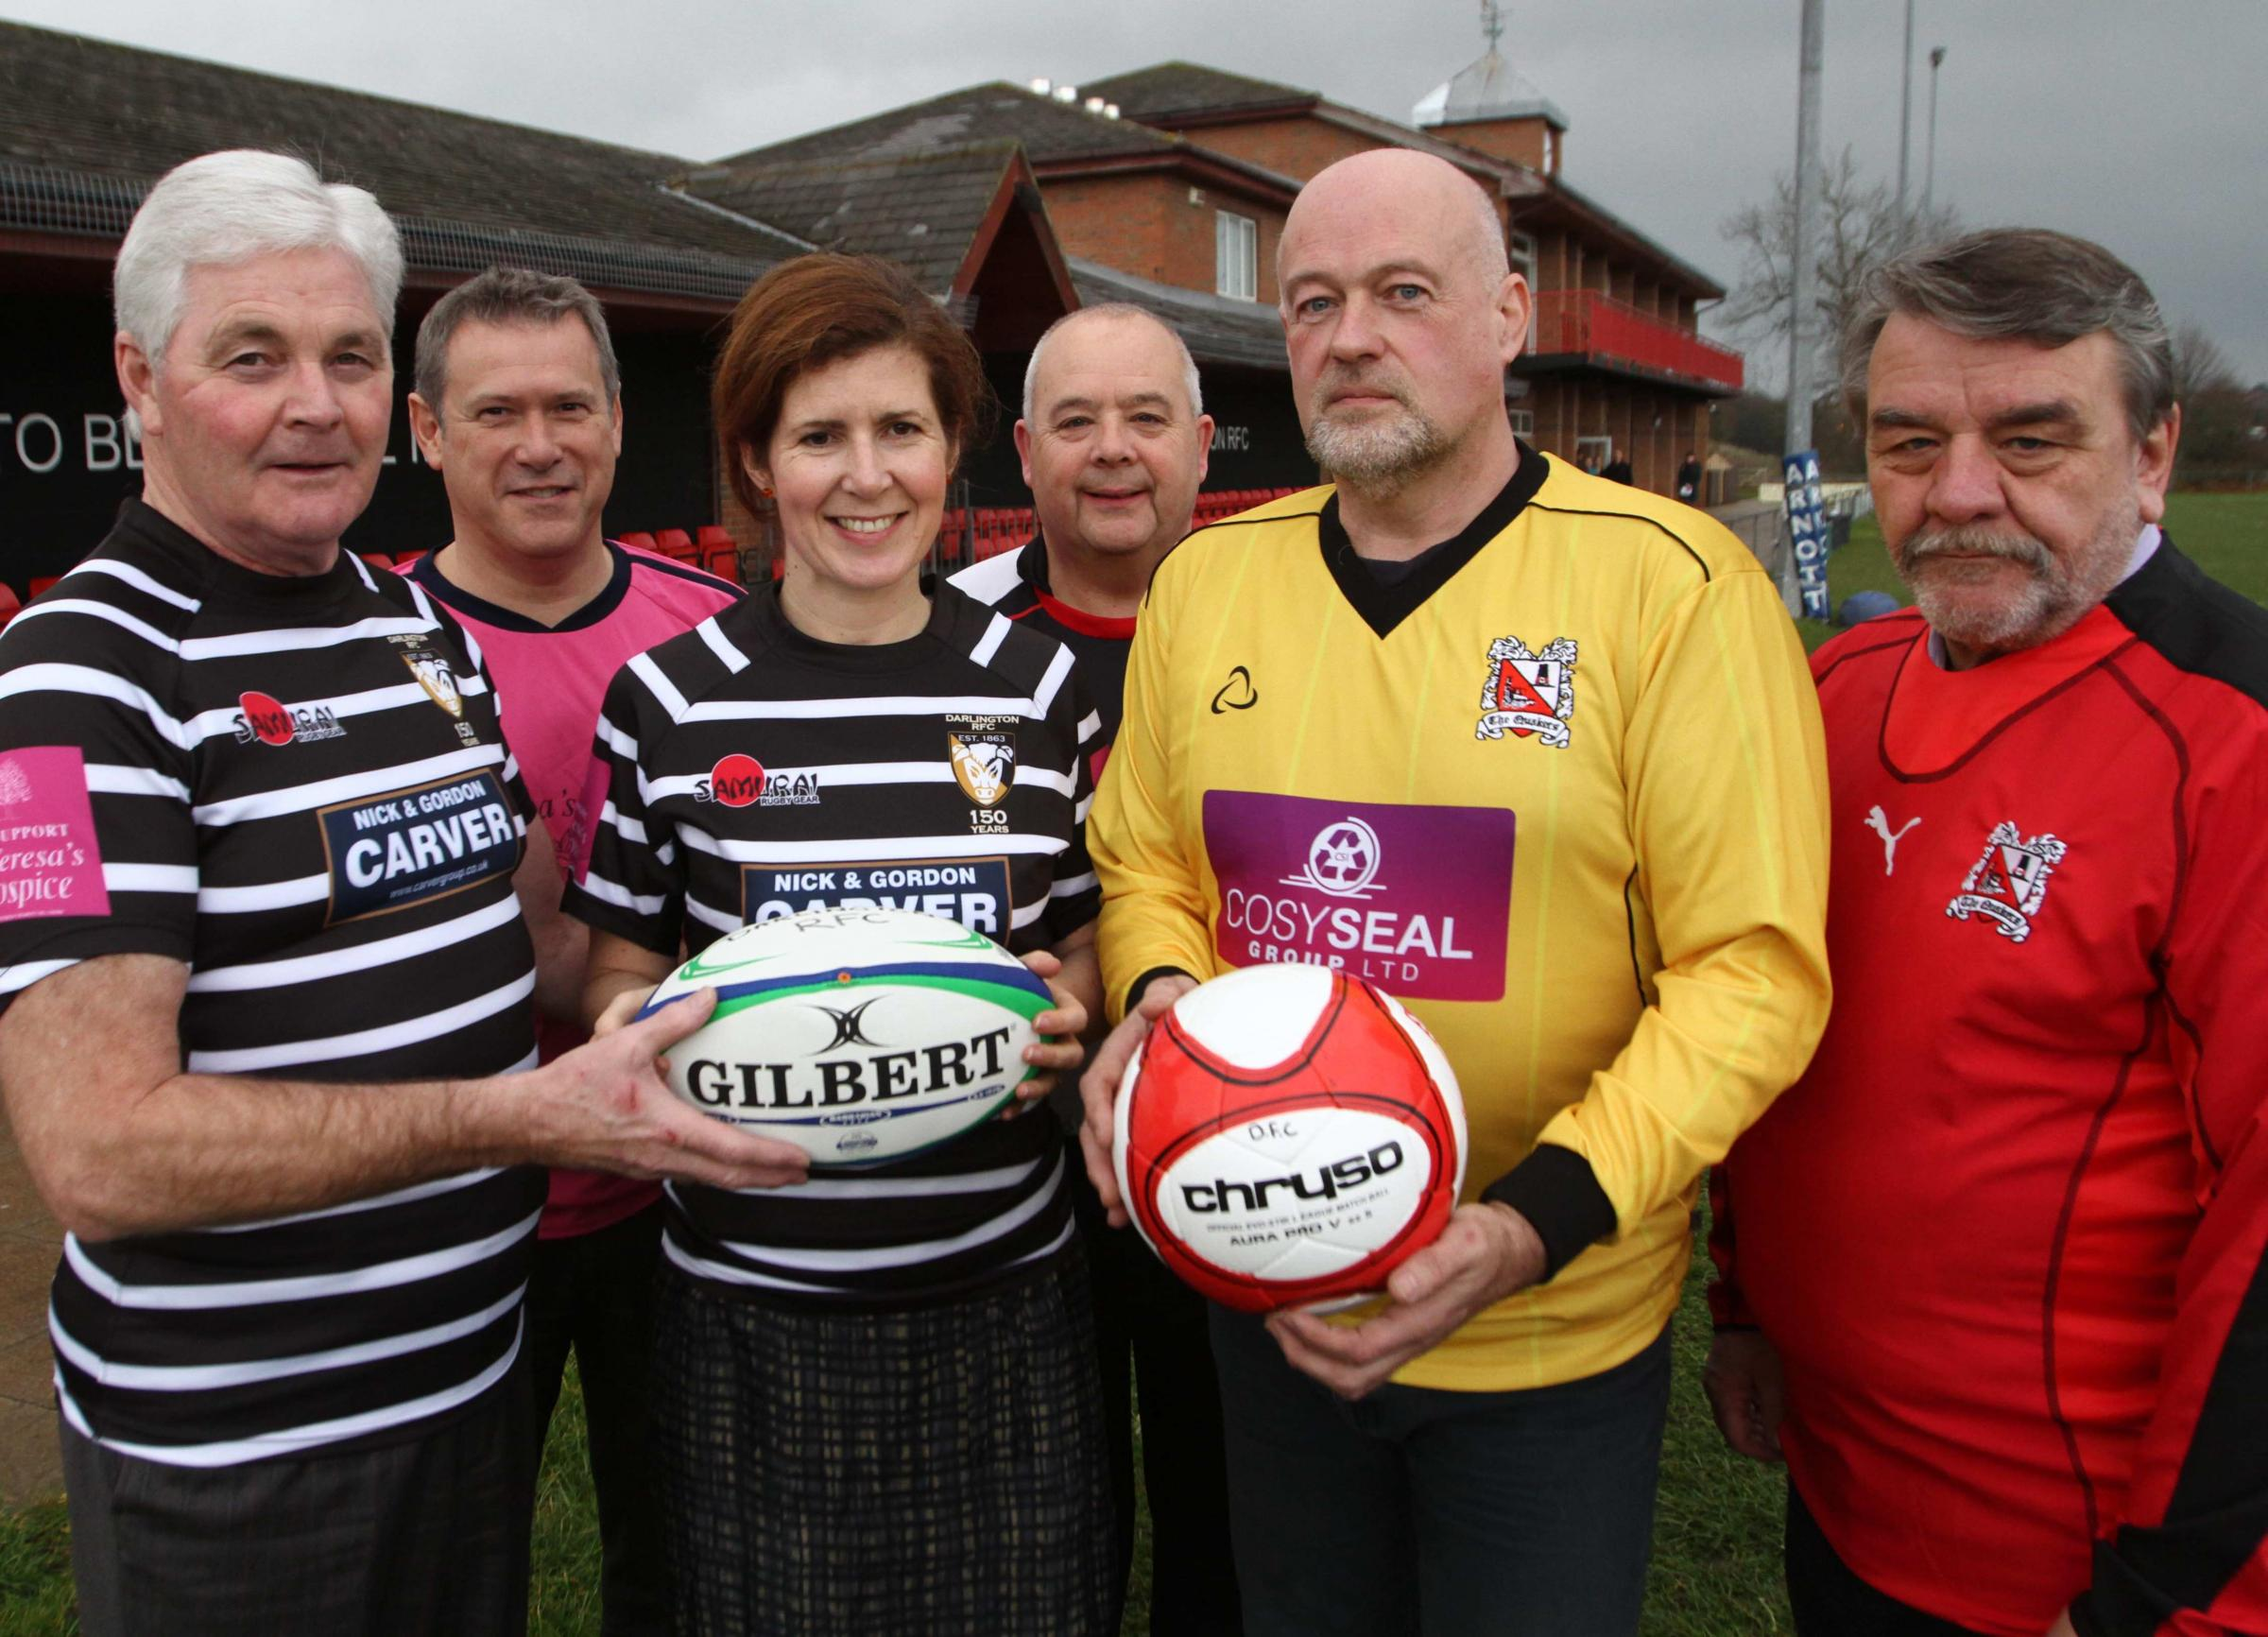 Mike Wilkinson from Darlington Rugby Football Club, Martin Jesper from Darlington football club, MP Jenny Chapman, Dave Mills from Darlington Football Club, Ian Wilkinson from Darlington Football Club and Coun Bill Dixon.